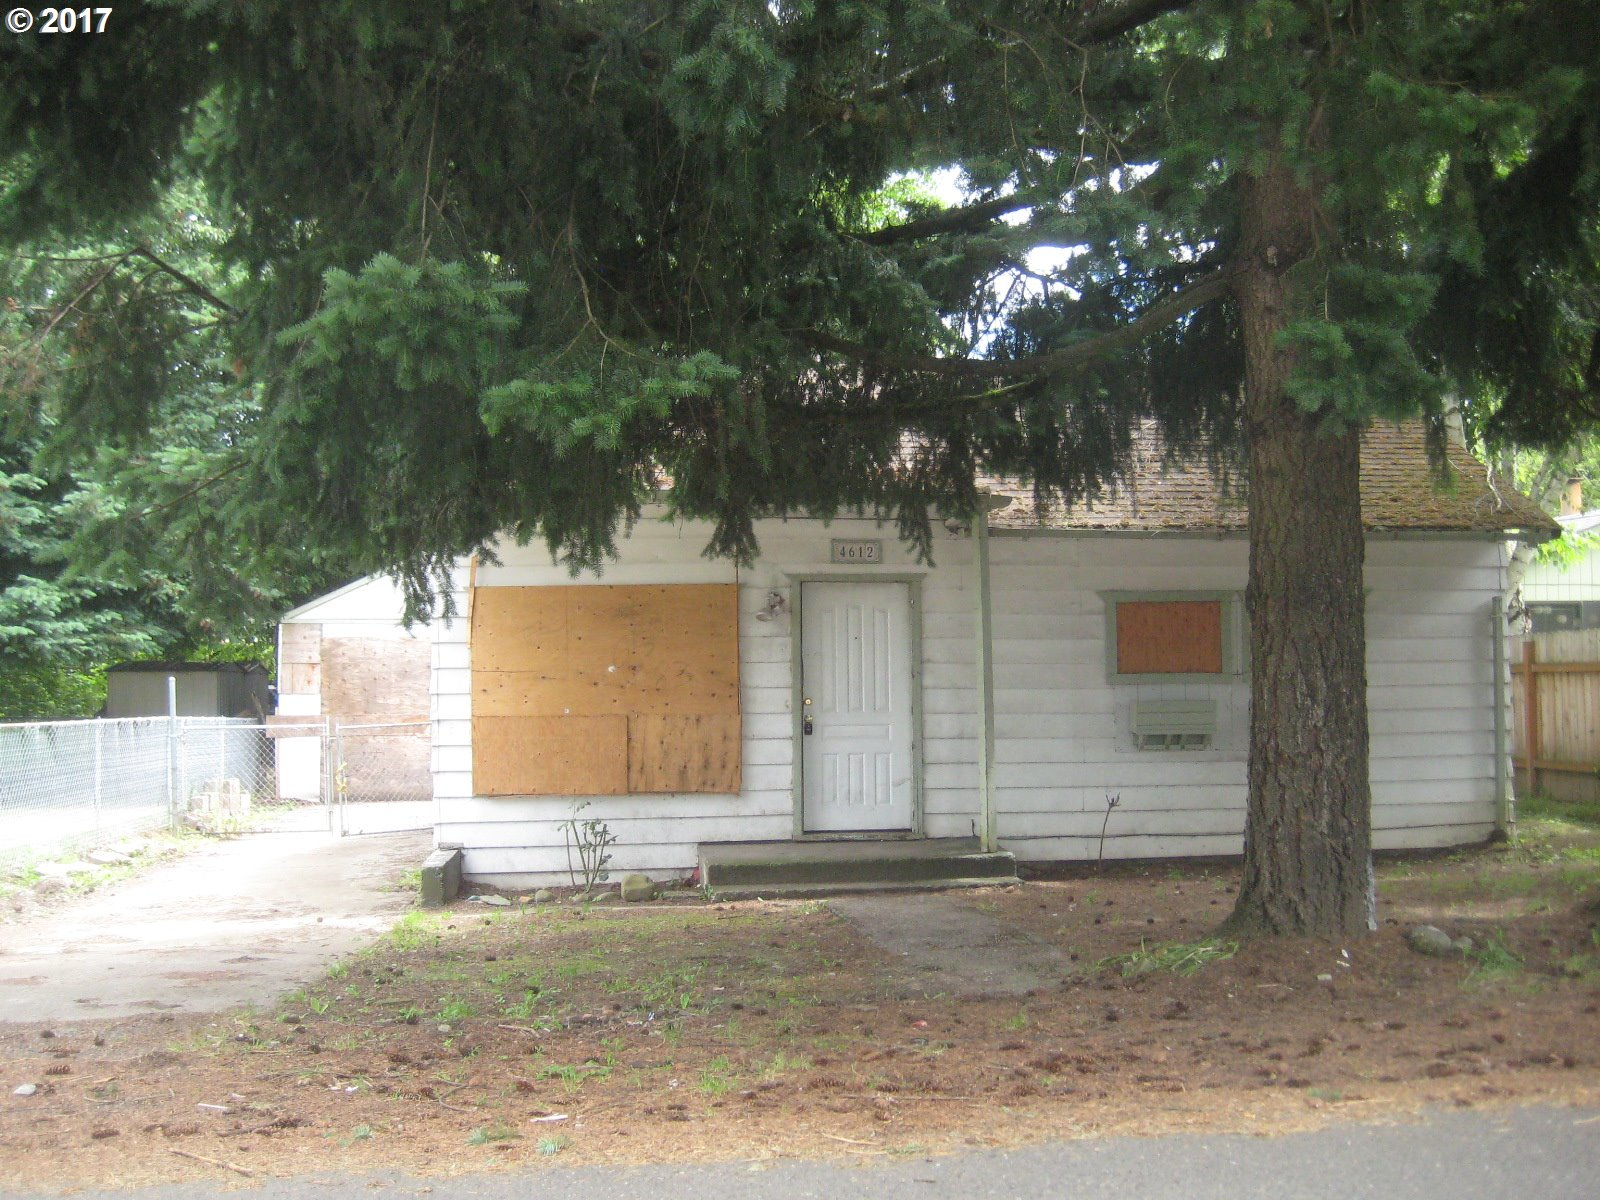 Great opportunity in a nice convenient location ! Minutes to shopping, public transportation, & community services. Easy access to the freeway. Please contact the City of Portland and/or at portlandmaps.com for zoning and special programs may be available for the property. Contact your Real Estate agent for more information.